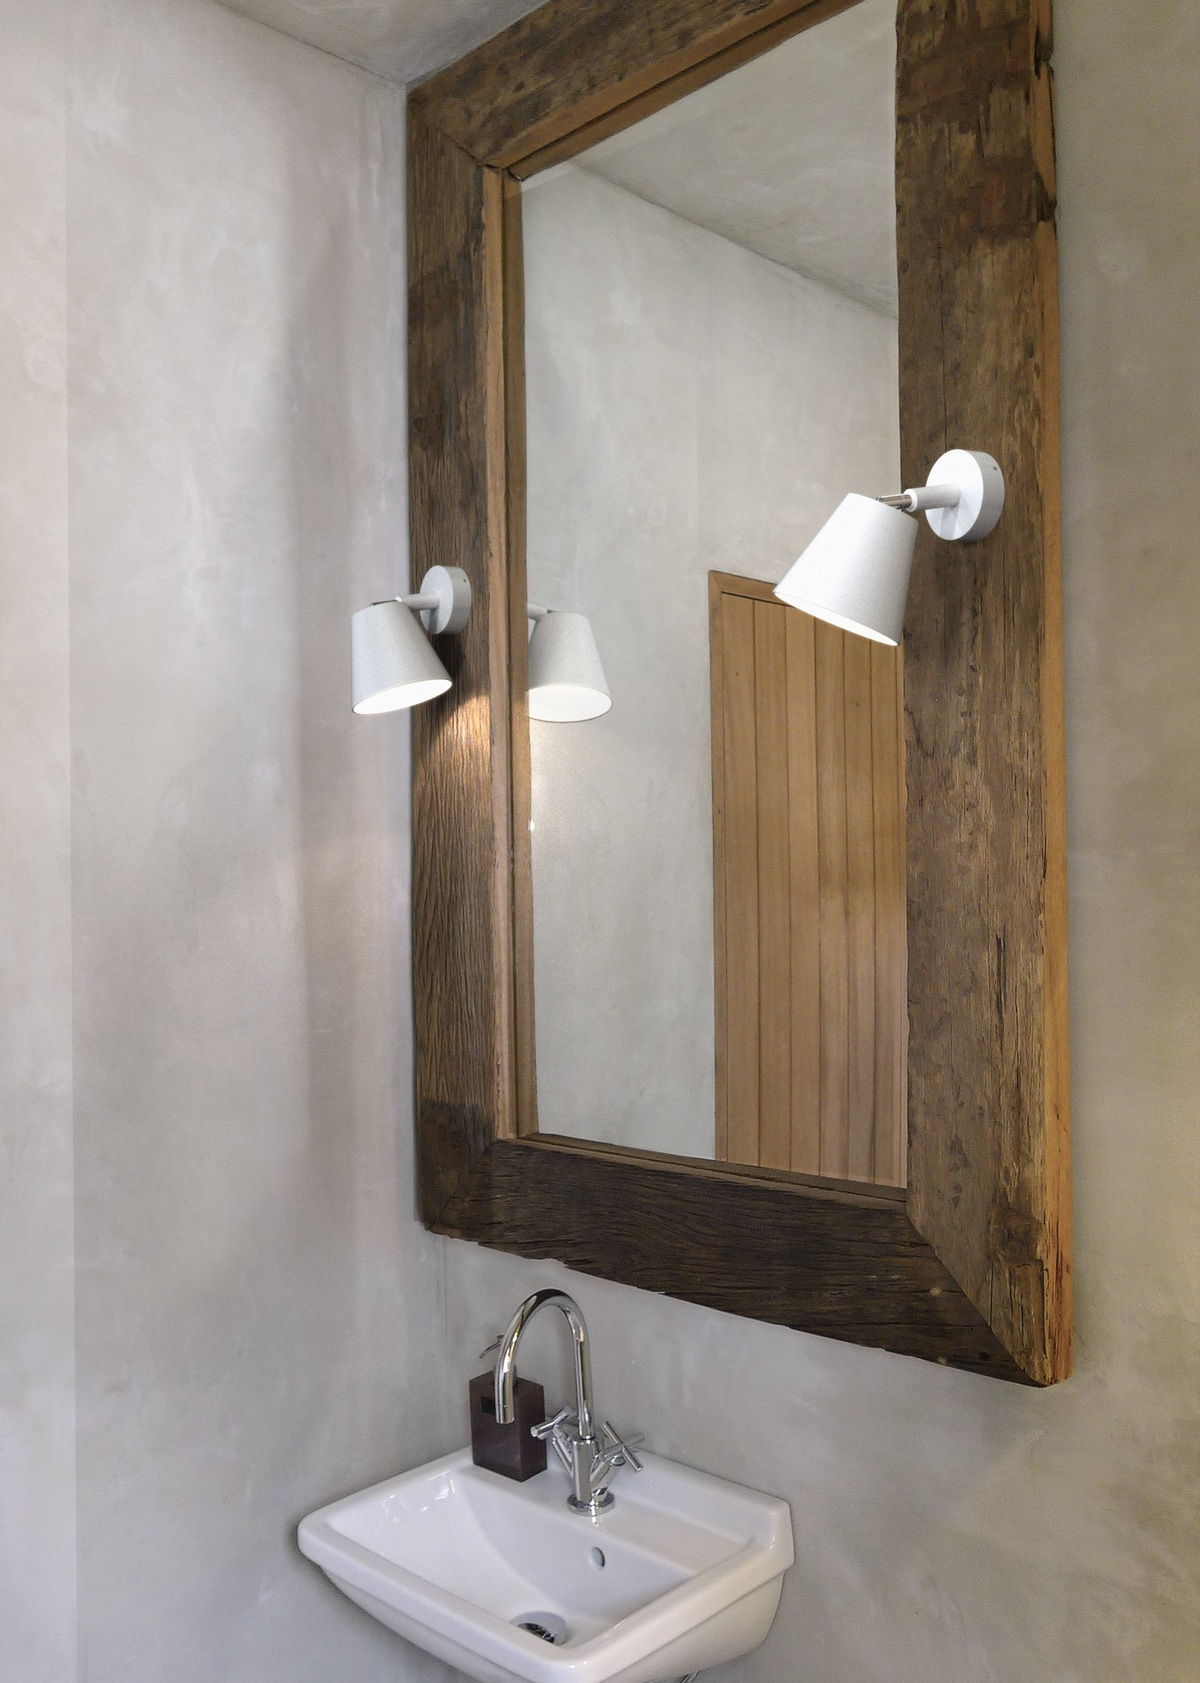 Best Bathroom Lighting The Best Lighting Solutions For Small Bathroom